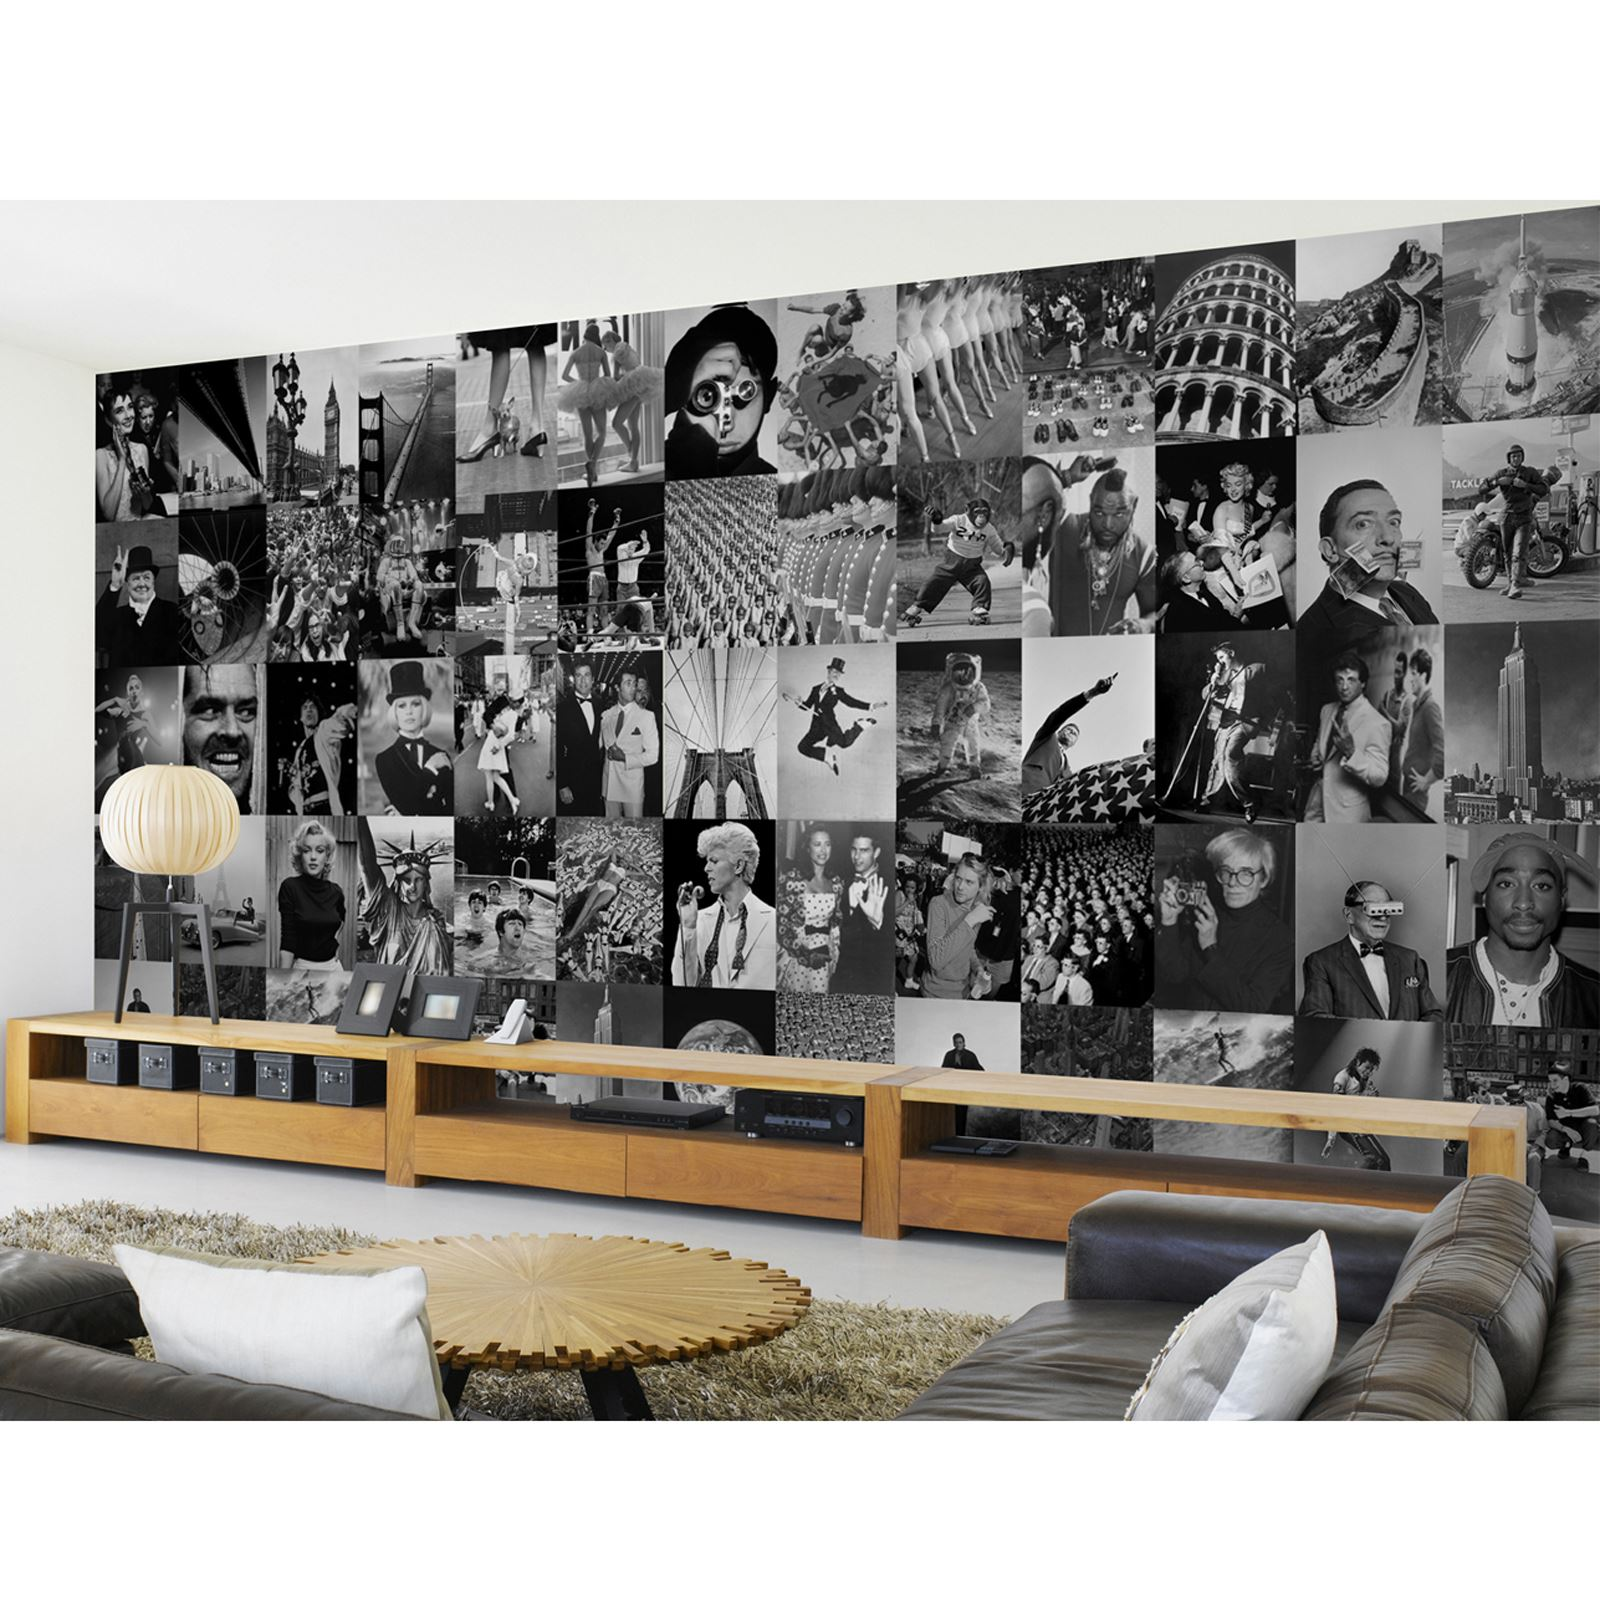 Creative collage life designer wall mural 64 piece for Collage mural ideas